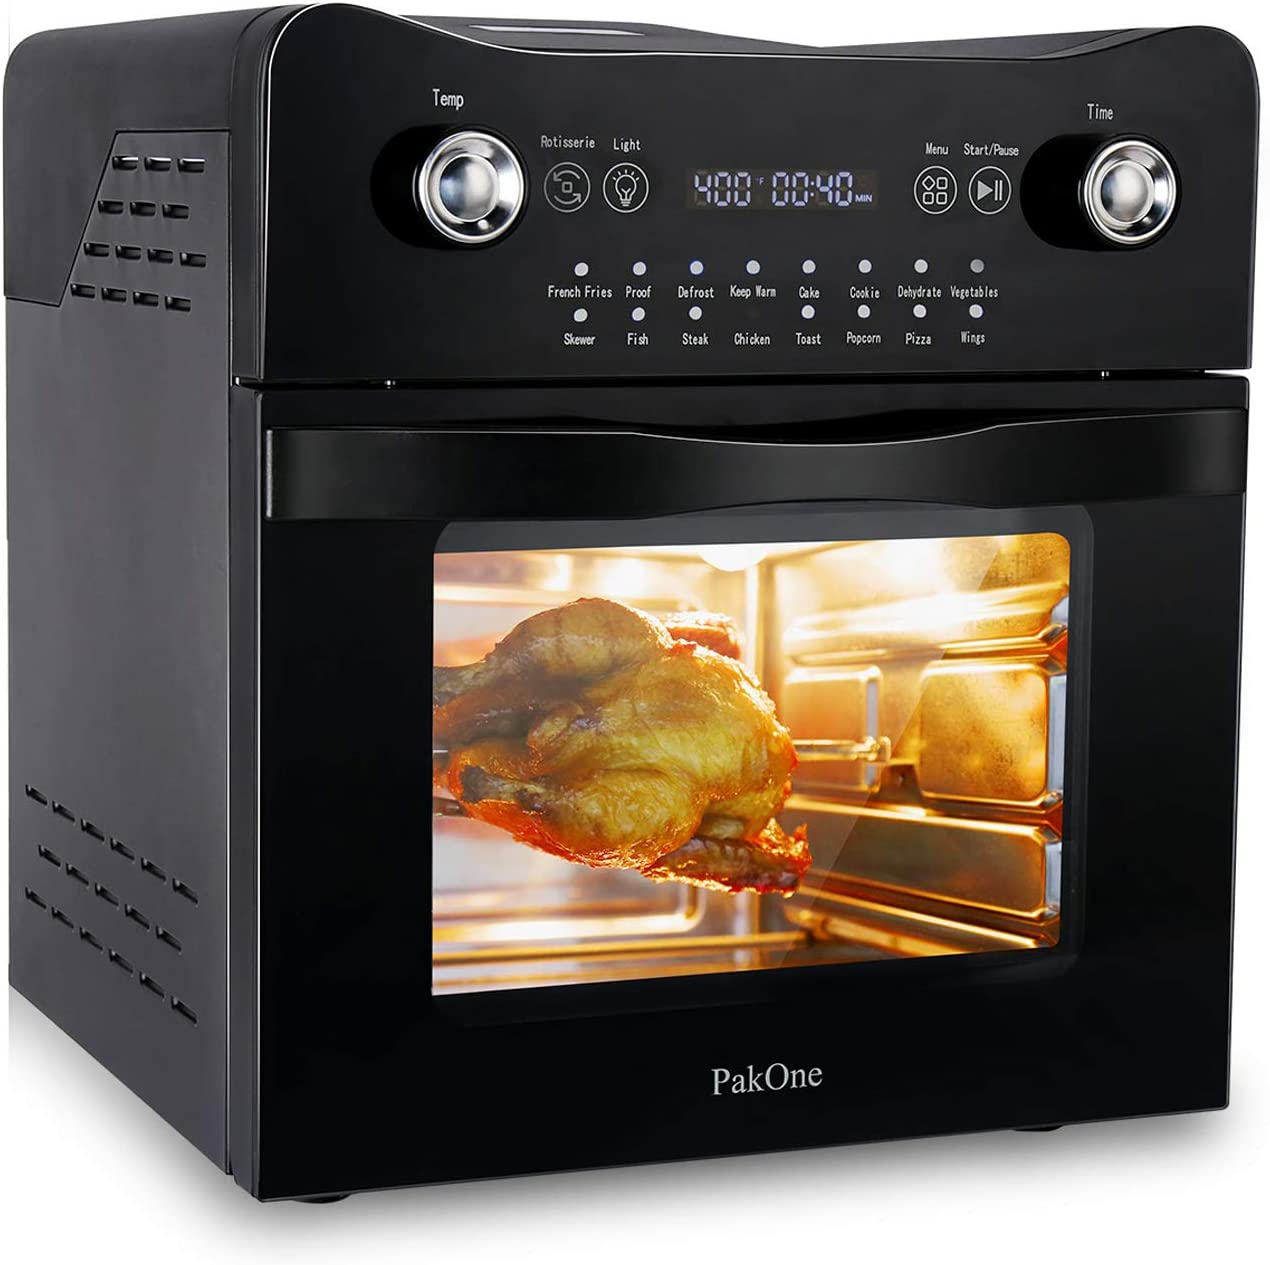 PakOne Air Fryer Oven, 16.8 Quart Electric Toaster Oven w/Rotisserie and Dehydrator, 1800W Electric Air Oven with LED Touch Screen Controls, 16-in-1 Countertop Oven, 9 Accessories ETL Listed(31 Recipes)